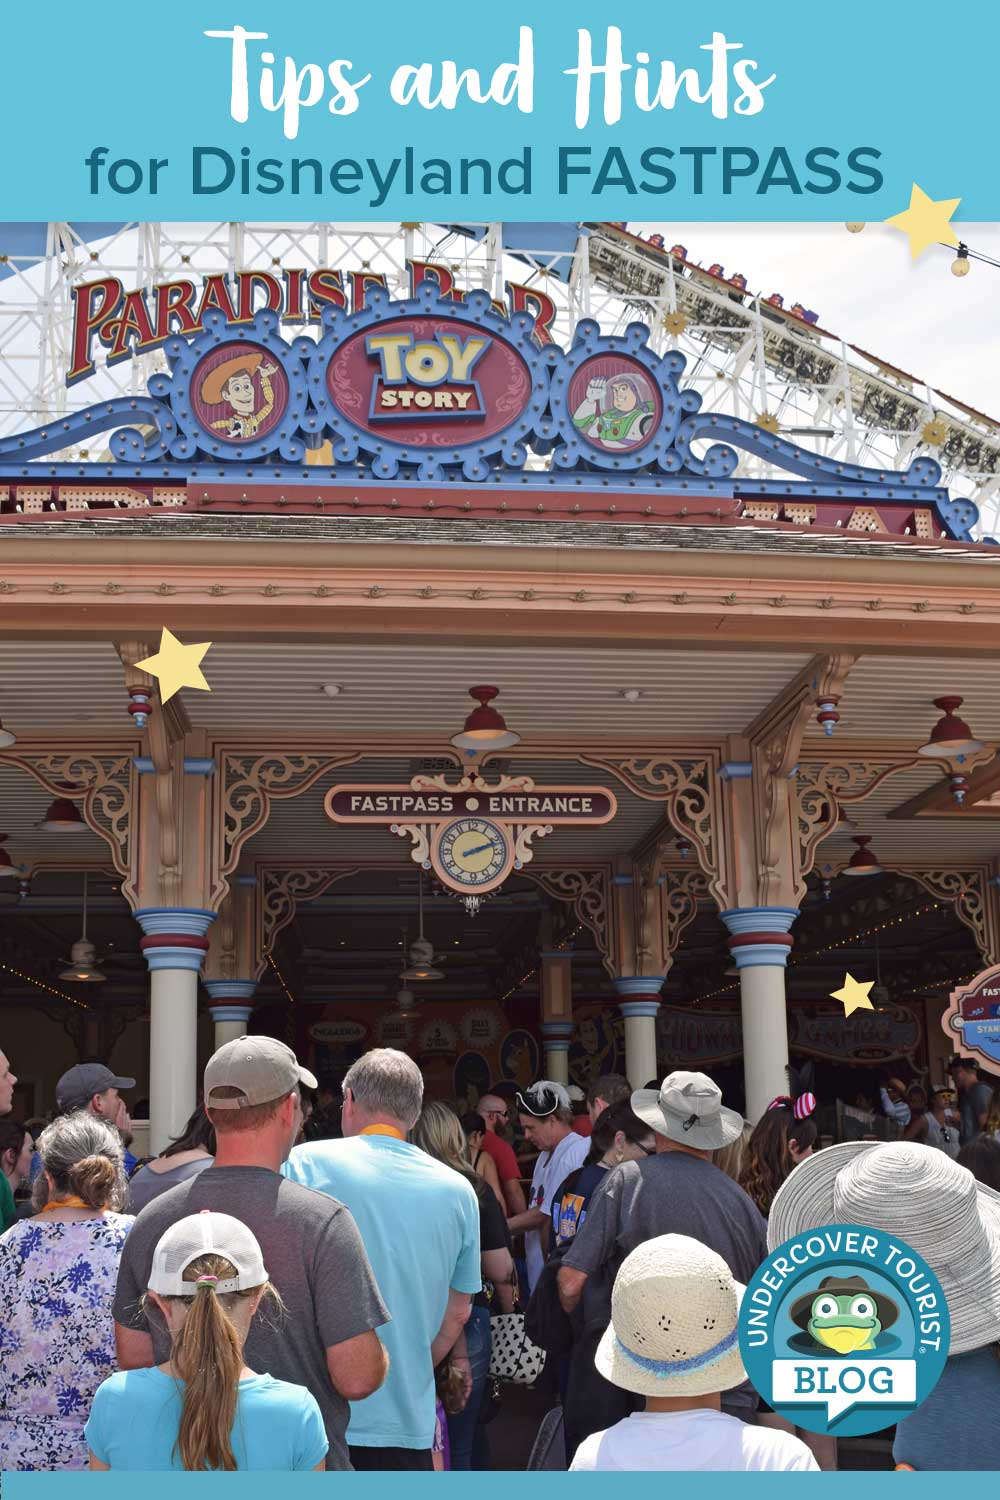 Tips and Hints for Disneyland FASTPASS